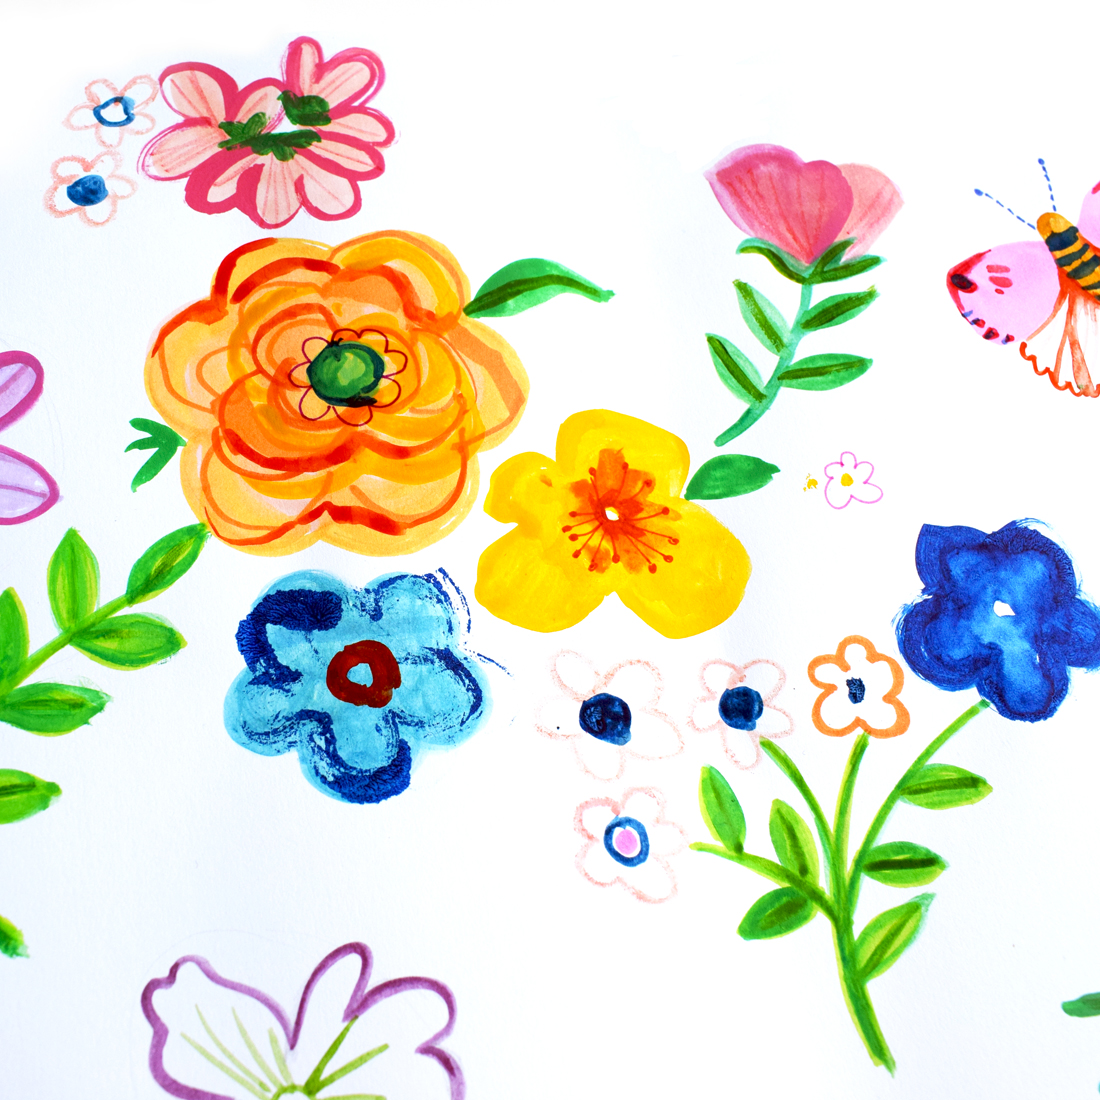 floral-pattern-design2-emmajayne-designs